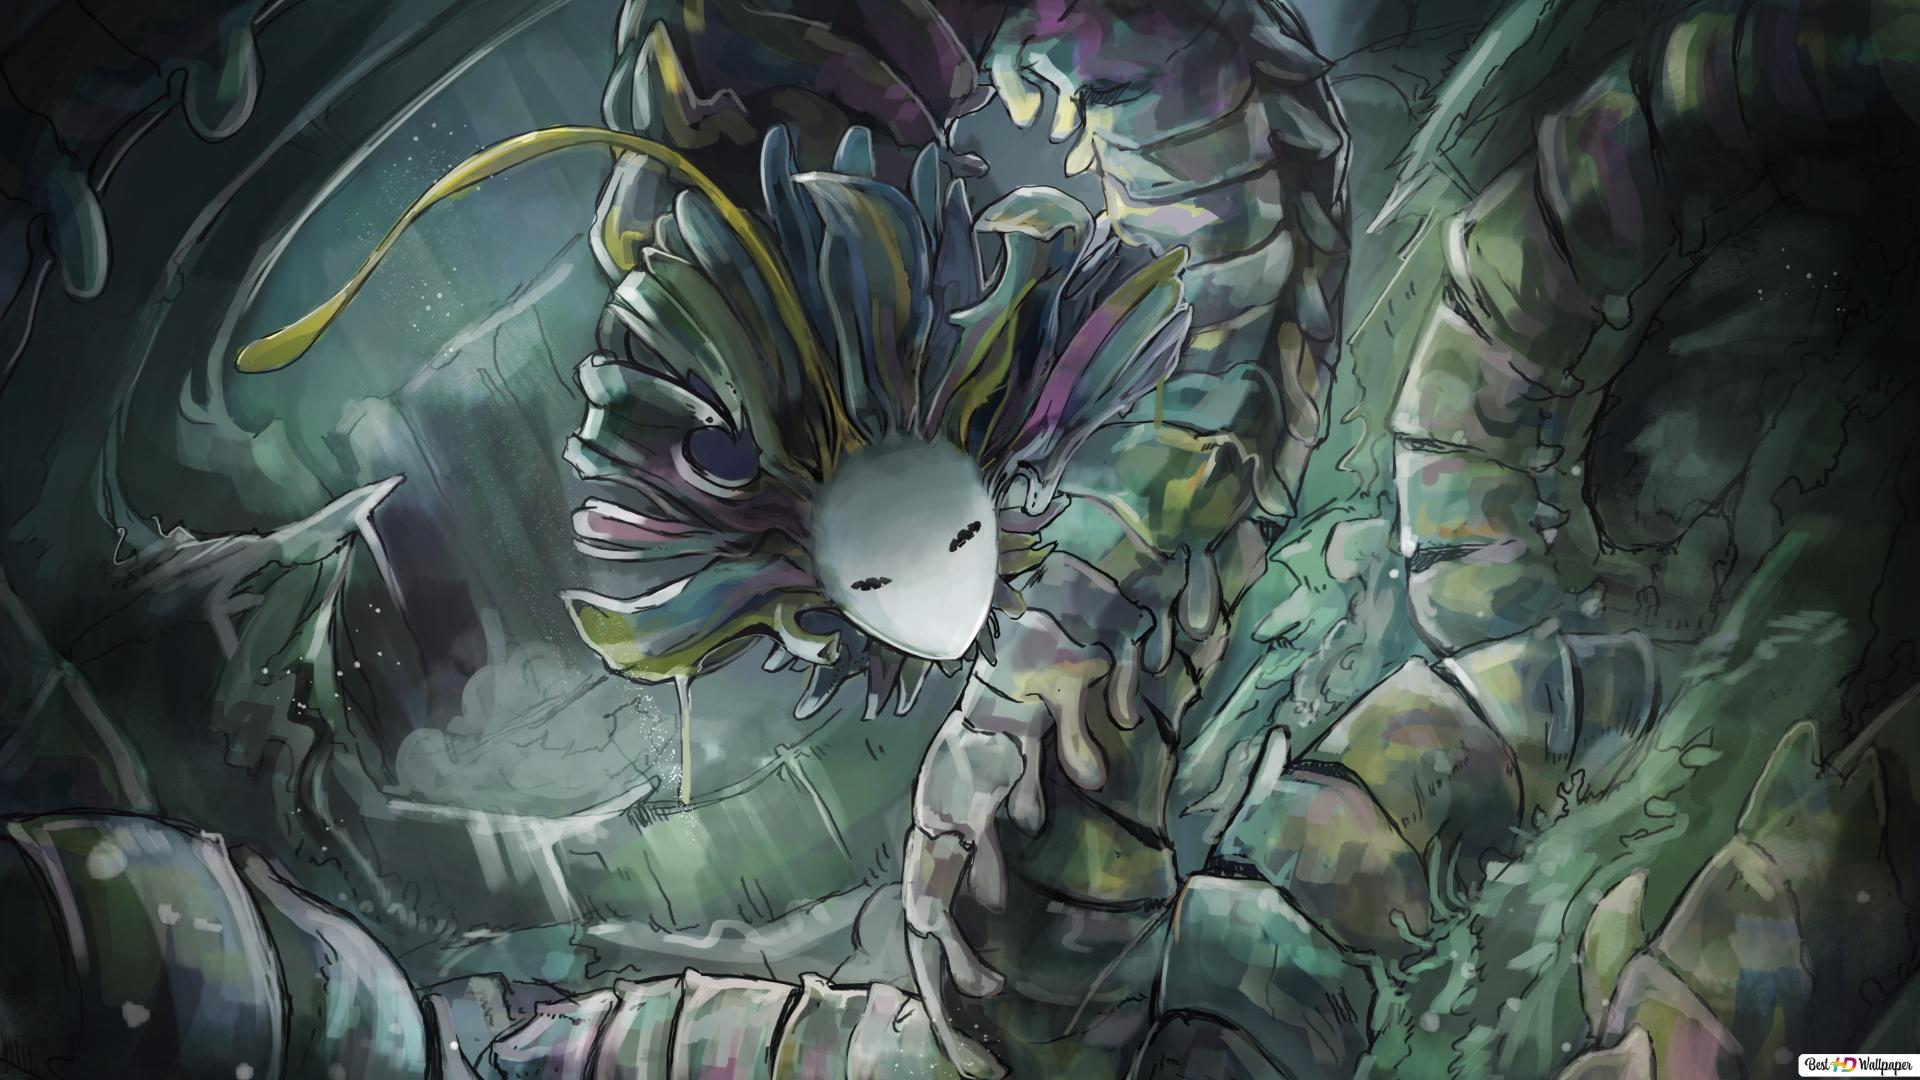 Made In Abyss Anime Hd Wallpaper Download